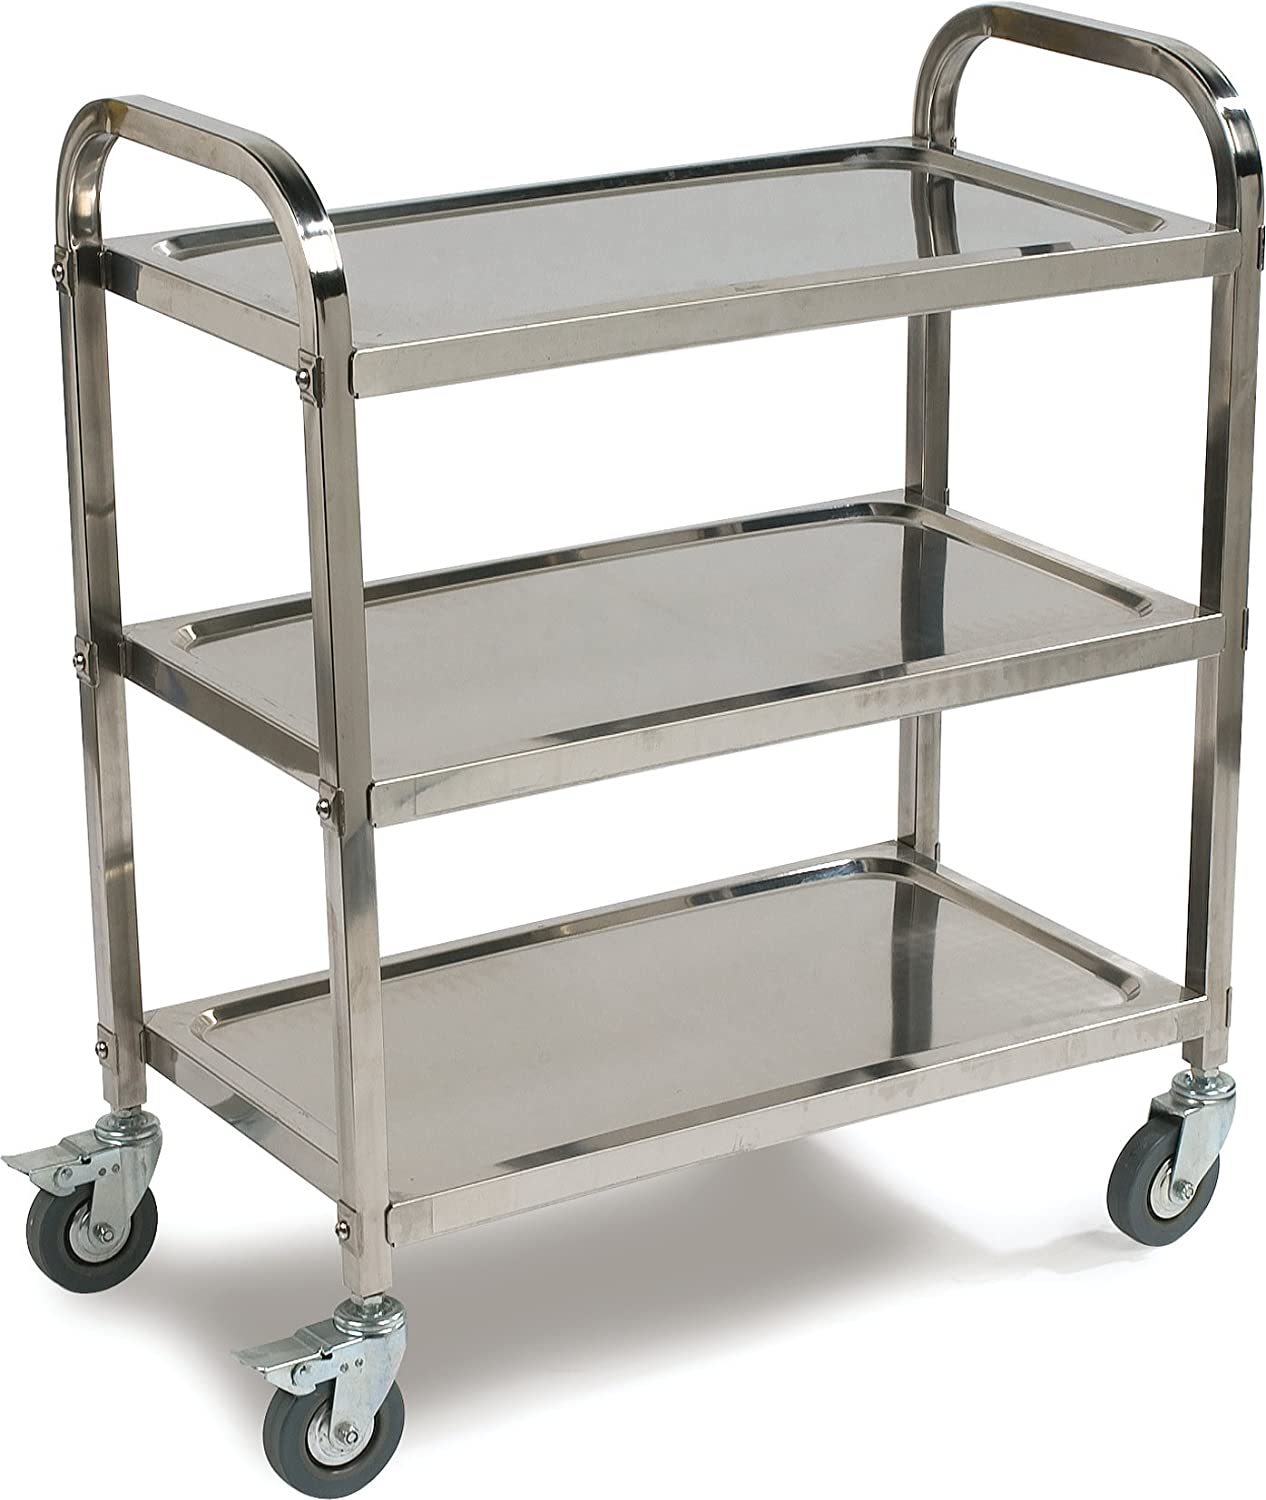 Carlisle UC4031529 Stainless Steel Knockdown Utility Cart, 400-Lb Capacity, 36-Inch X 15.75-Inch X 29.5-Inch, 3 Shelf